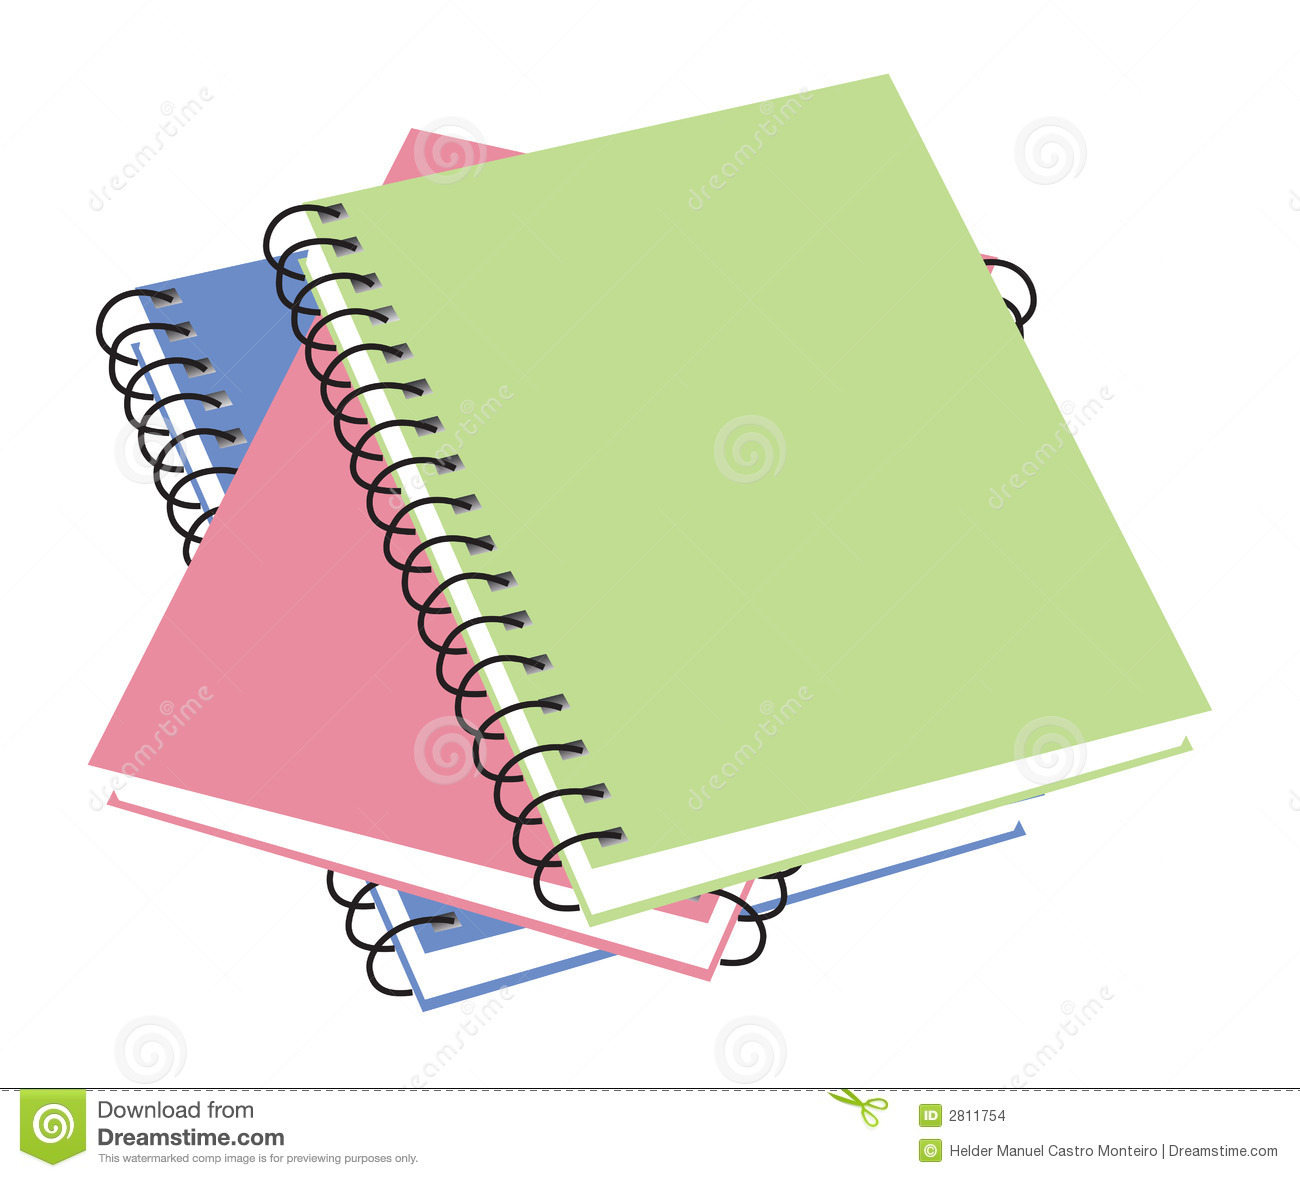 Notebooks clipart.